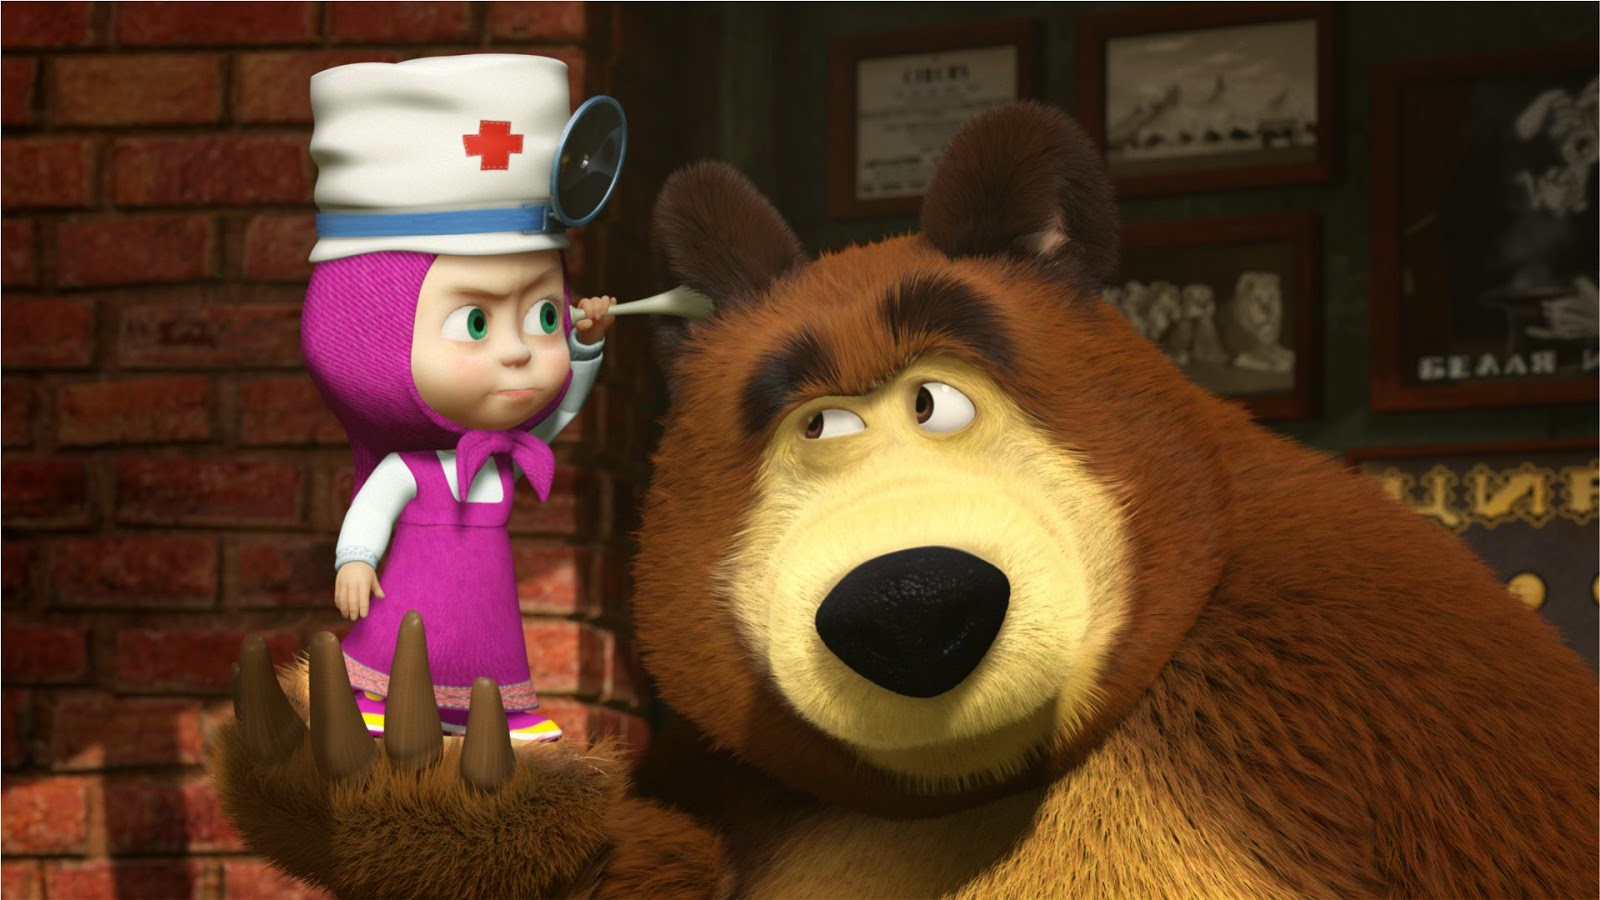 10 Wallpaper Atau DP BBM Masha And The Bear HD Khusus Android 2015